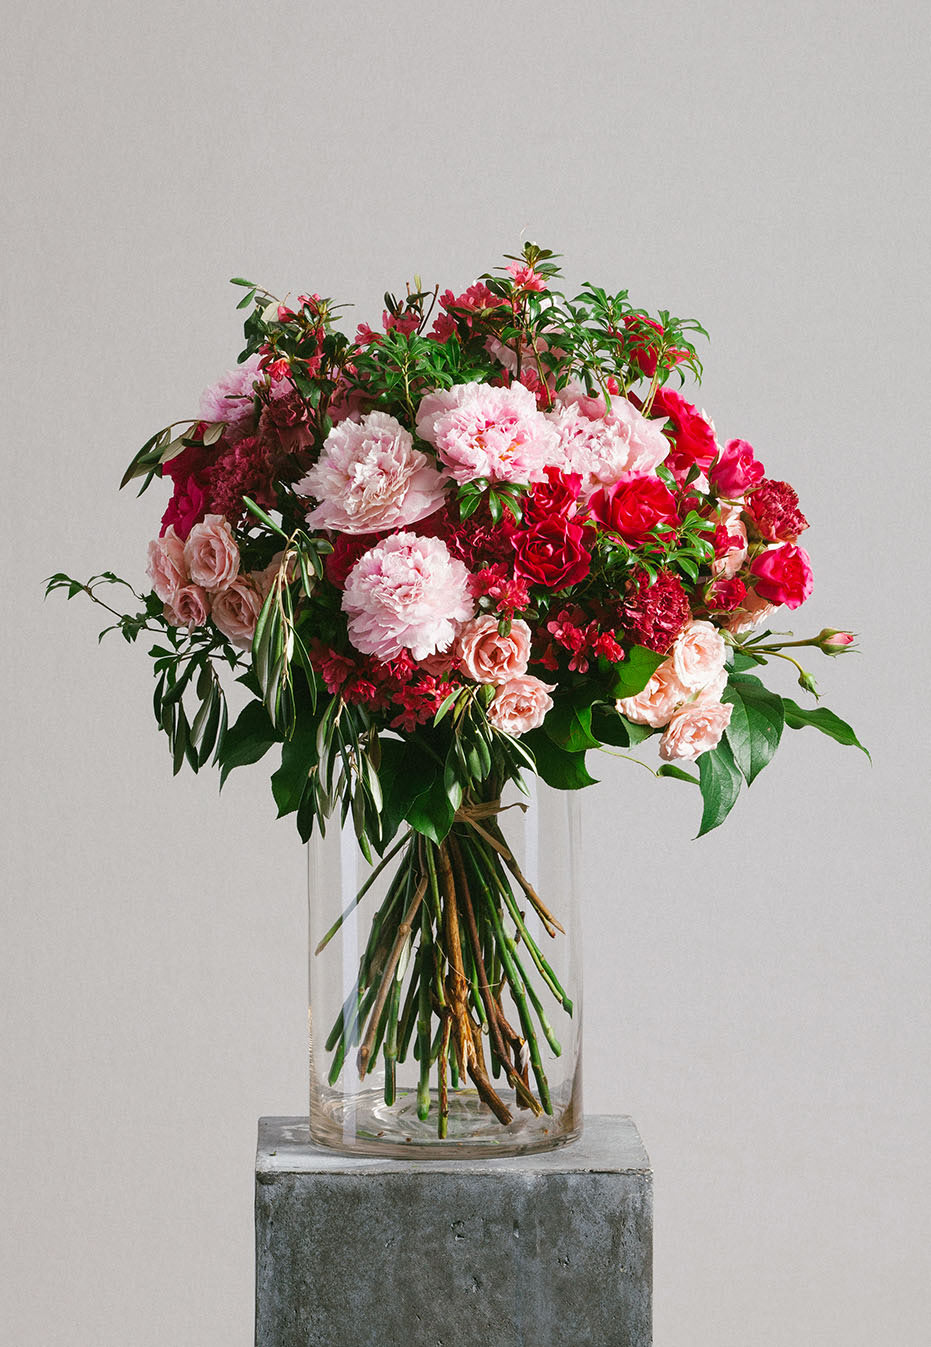 flower bouquet of peony and rhododendron by flannel flowers